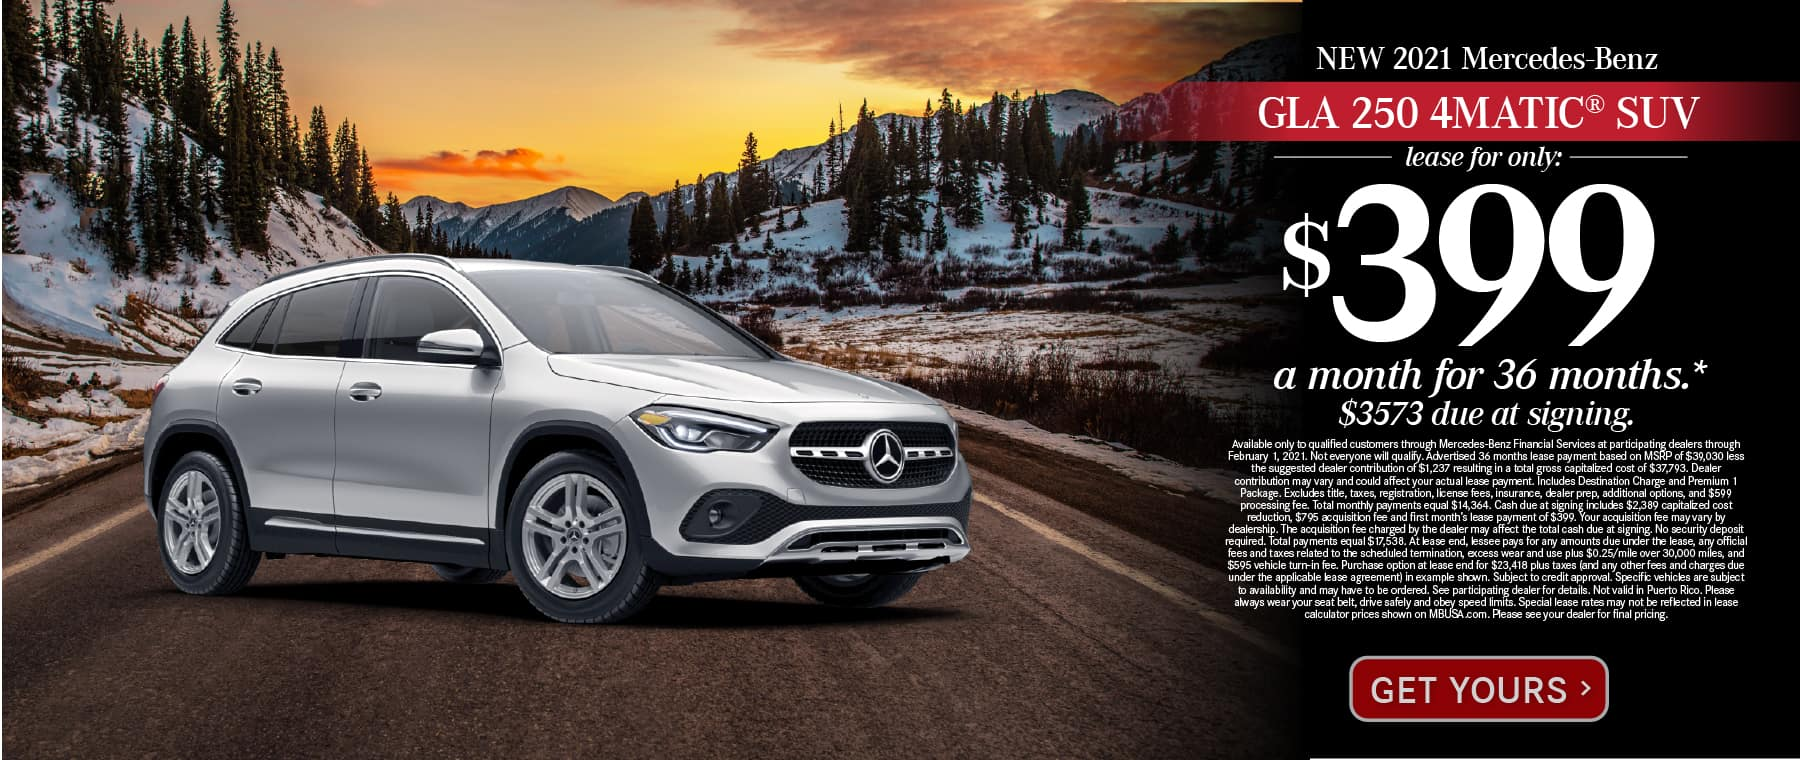 New 2021 Mercedes-Benz GLA 250 4MATIC® Lease for only: $399 a month for 36 months. $3573 due at signing. Get Yours.